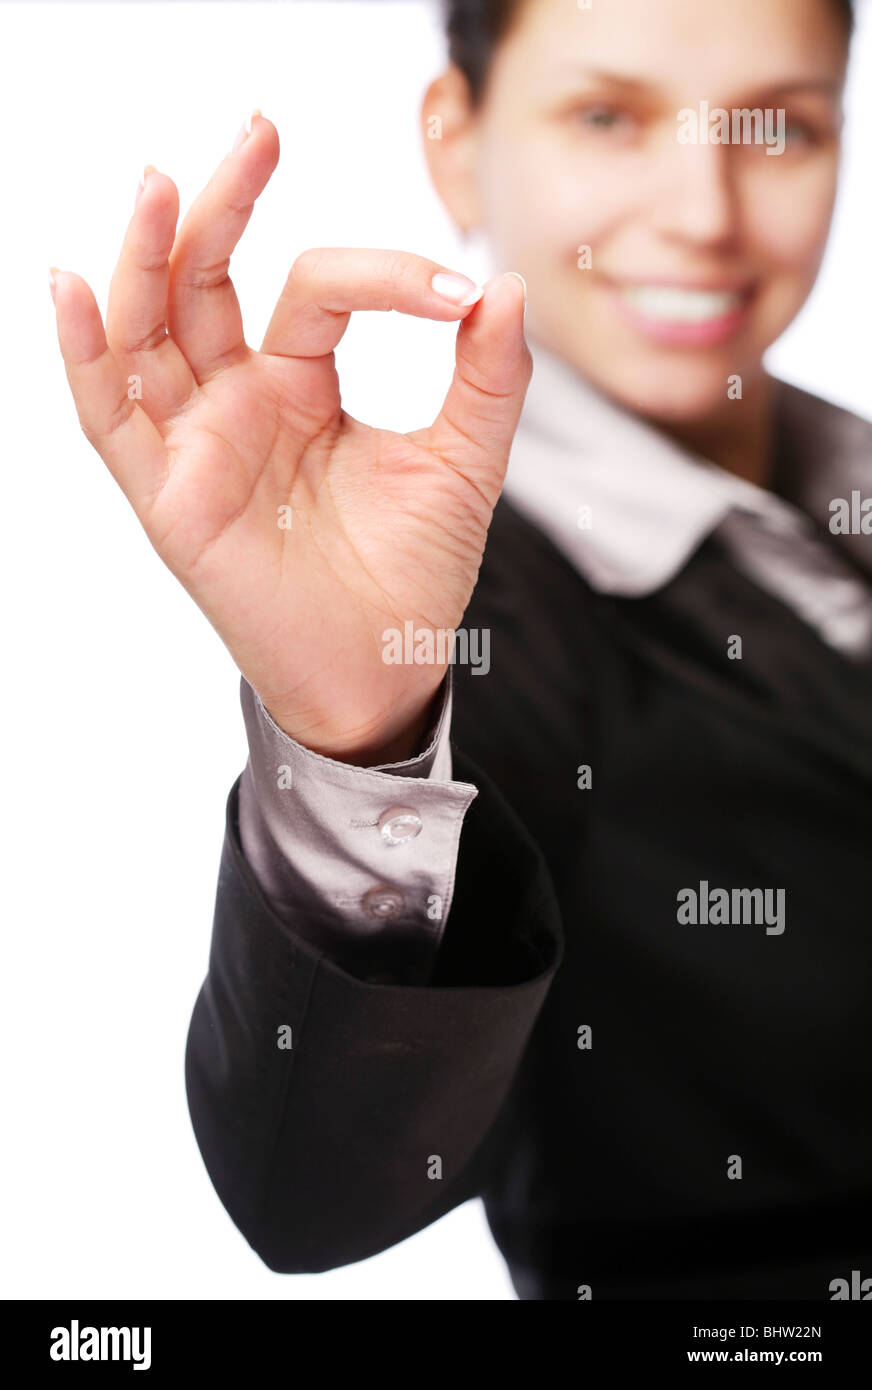 Business woman makes sign 'Ok' by hand. Isolated on a white - Stock Image